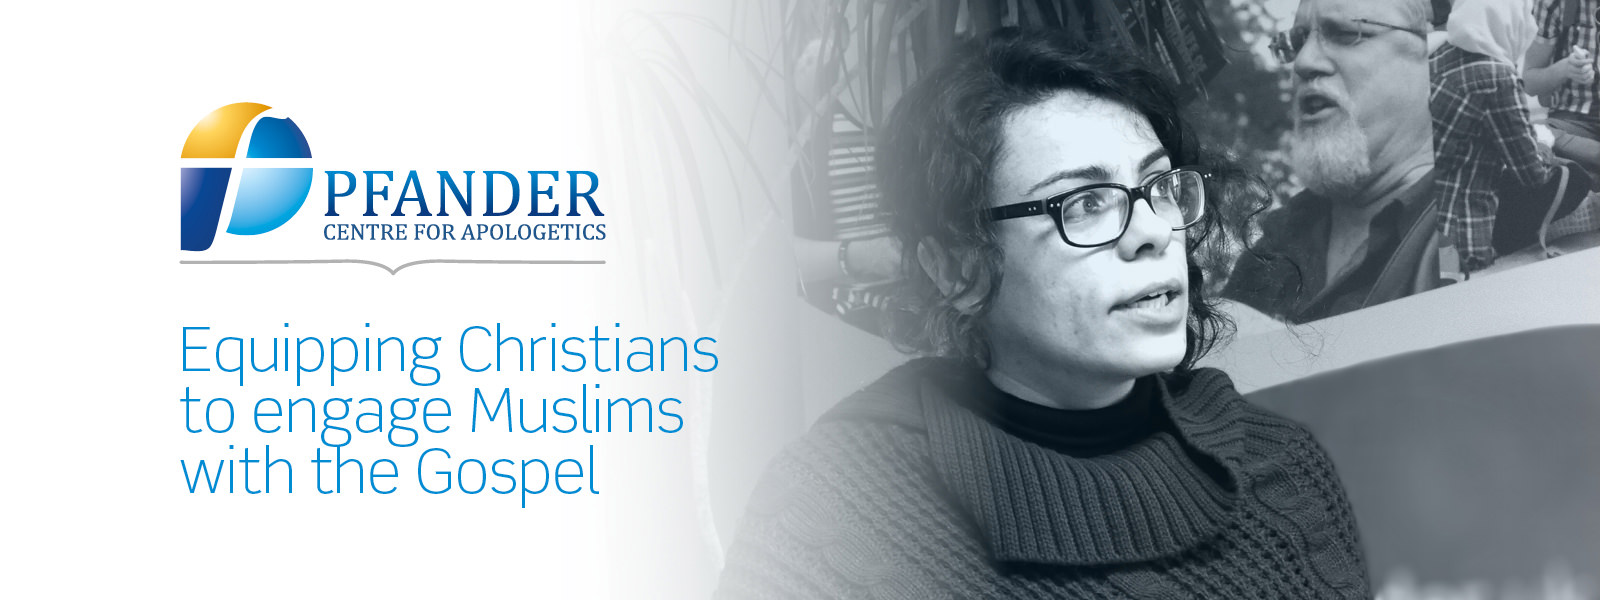 Equipping Christians to engage Muslims with the Gospel